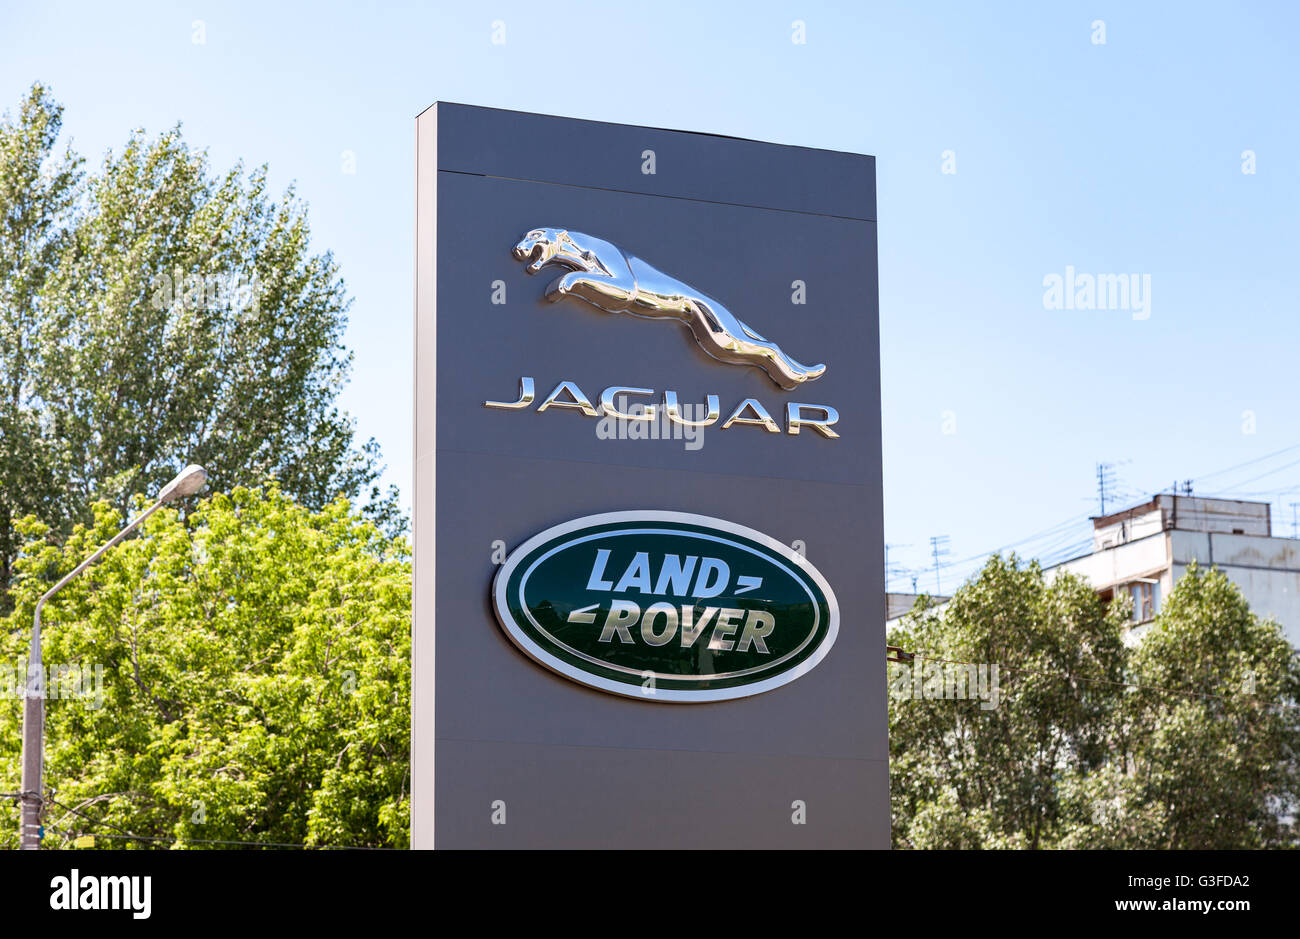 land on mg construction in the london art interior dealerships of compressed landrover dealership lookers this sustainable environment west central news rover state s incorporating sophiscated focus technologies to new jaguar jlr for was